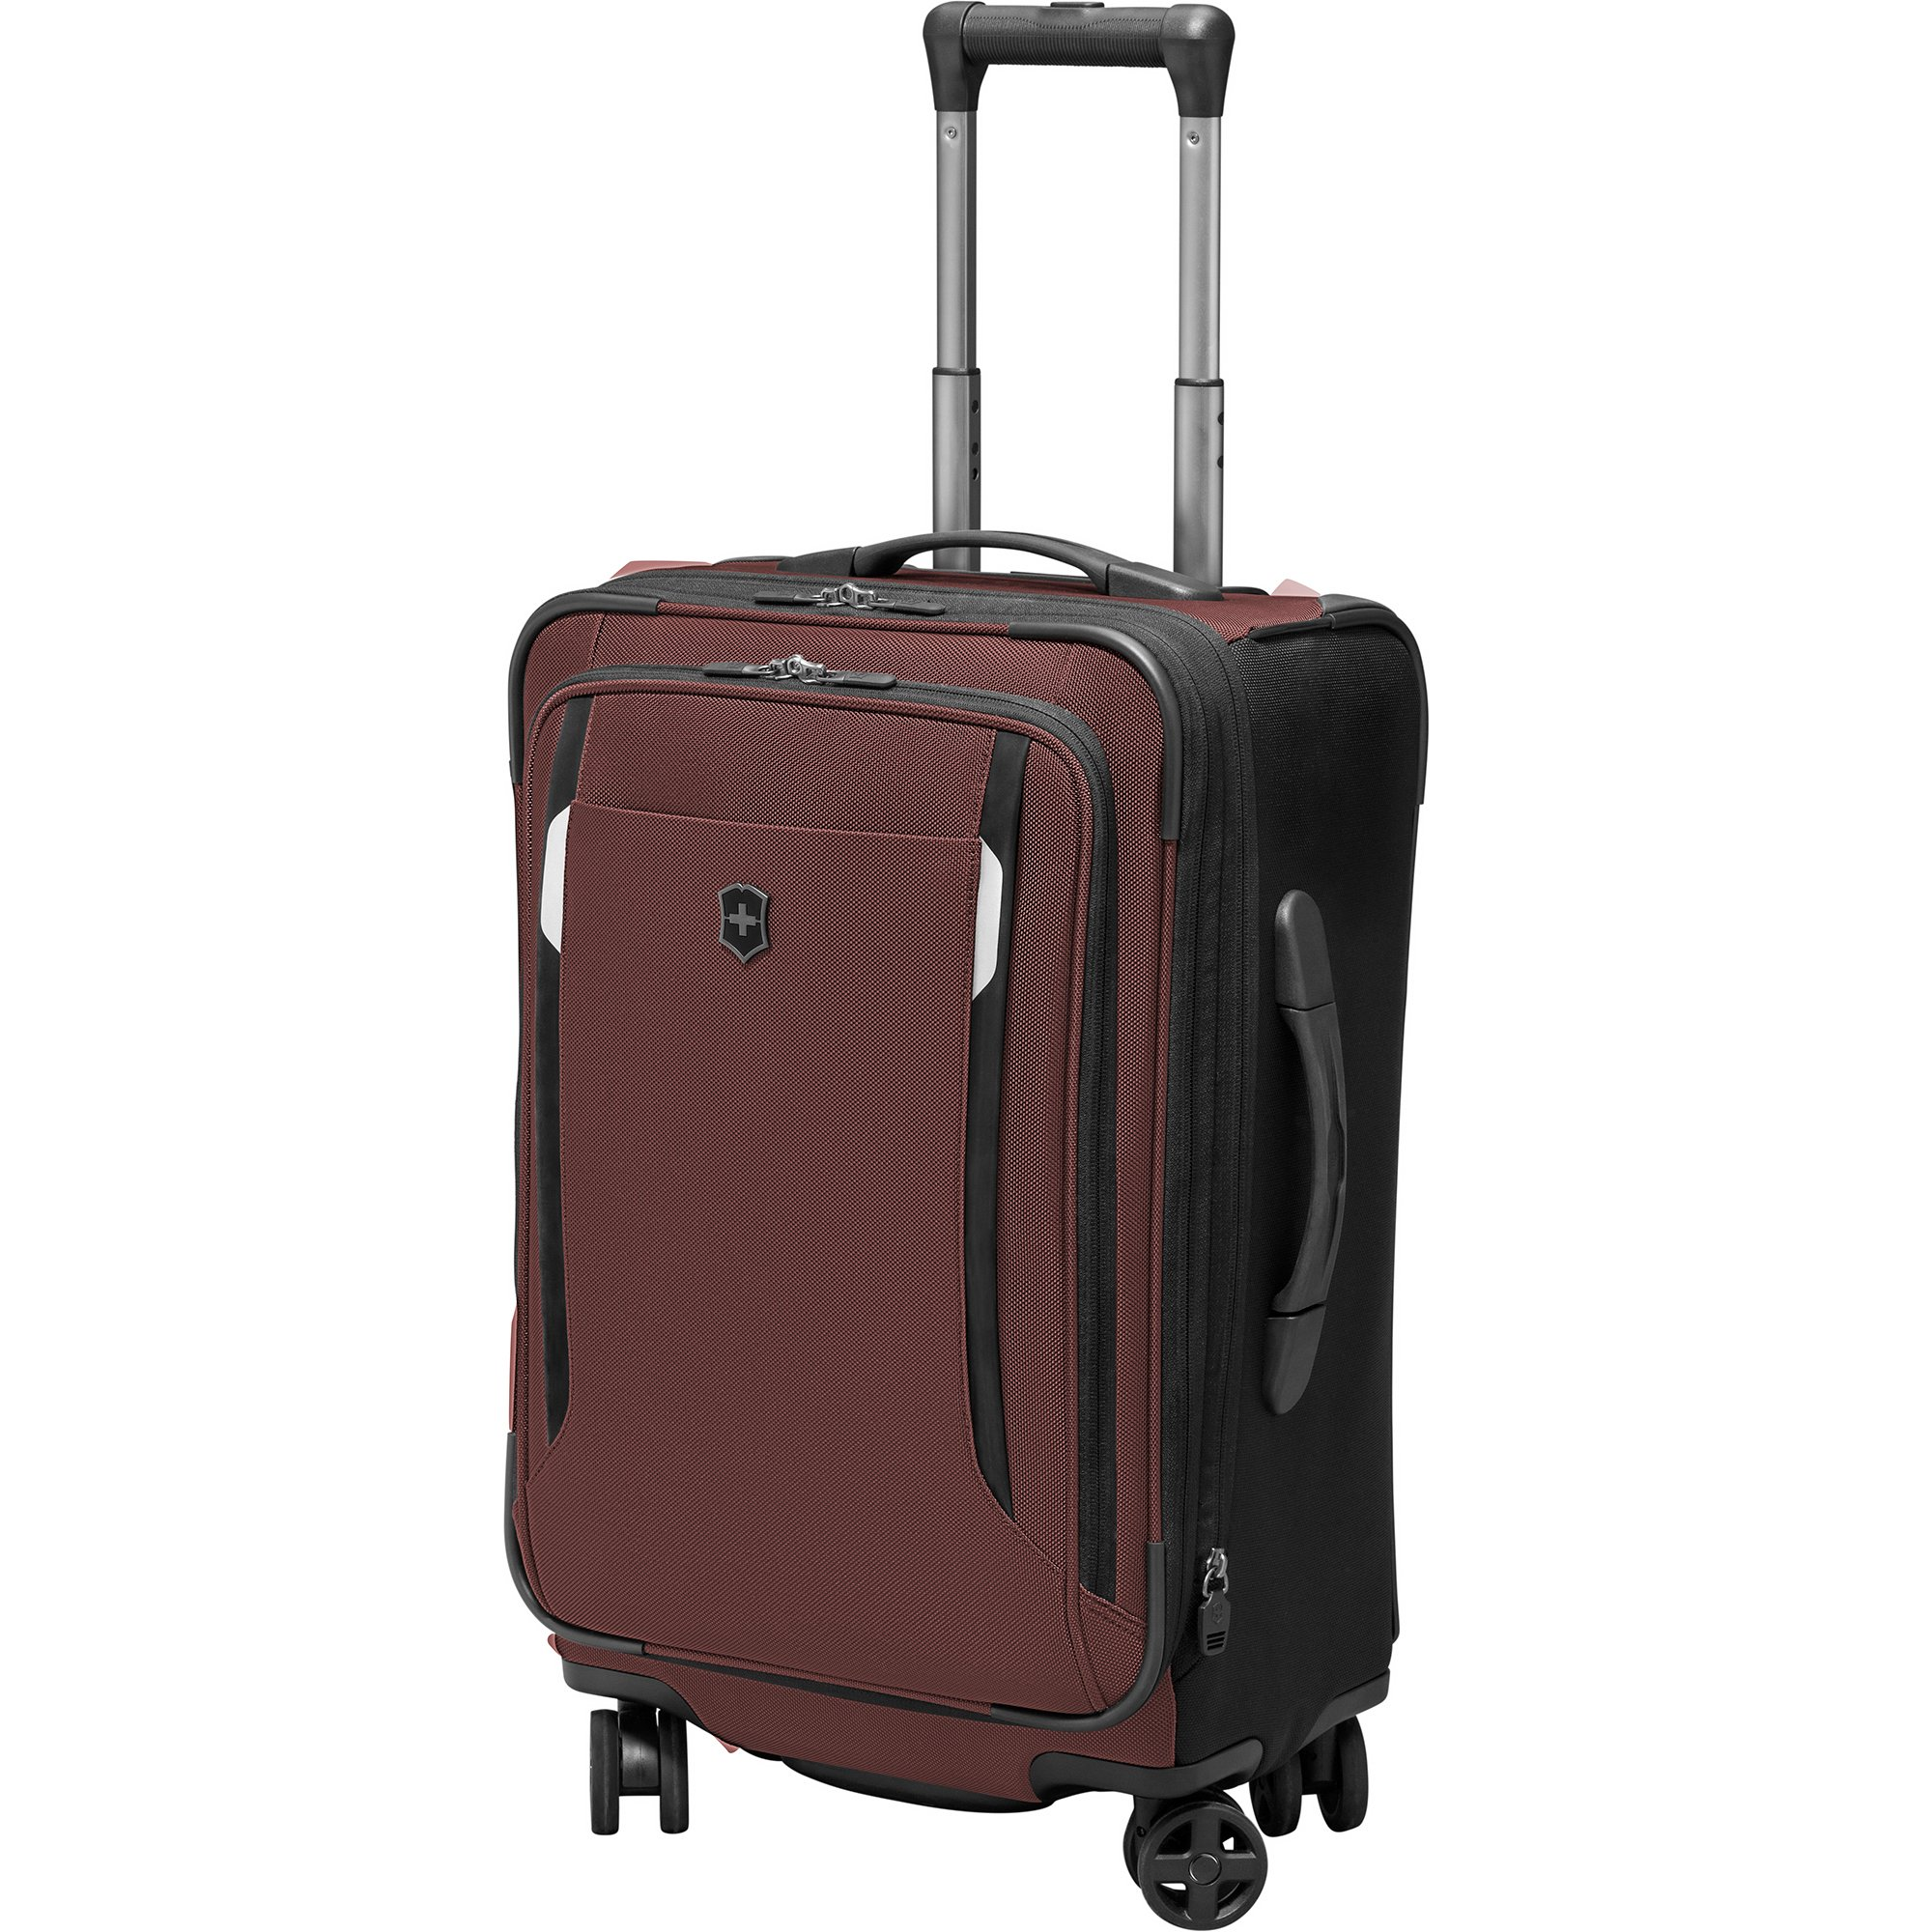 Werks Traveler 5.0 WT 20 Dual-Caster Spinner Carry On Suitcase (One Size, Rust Orange) by Victorinox